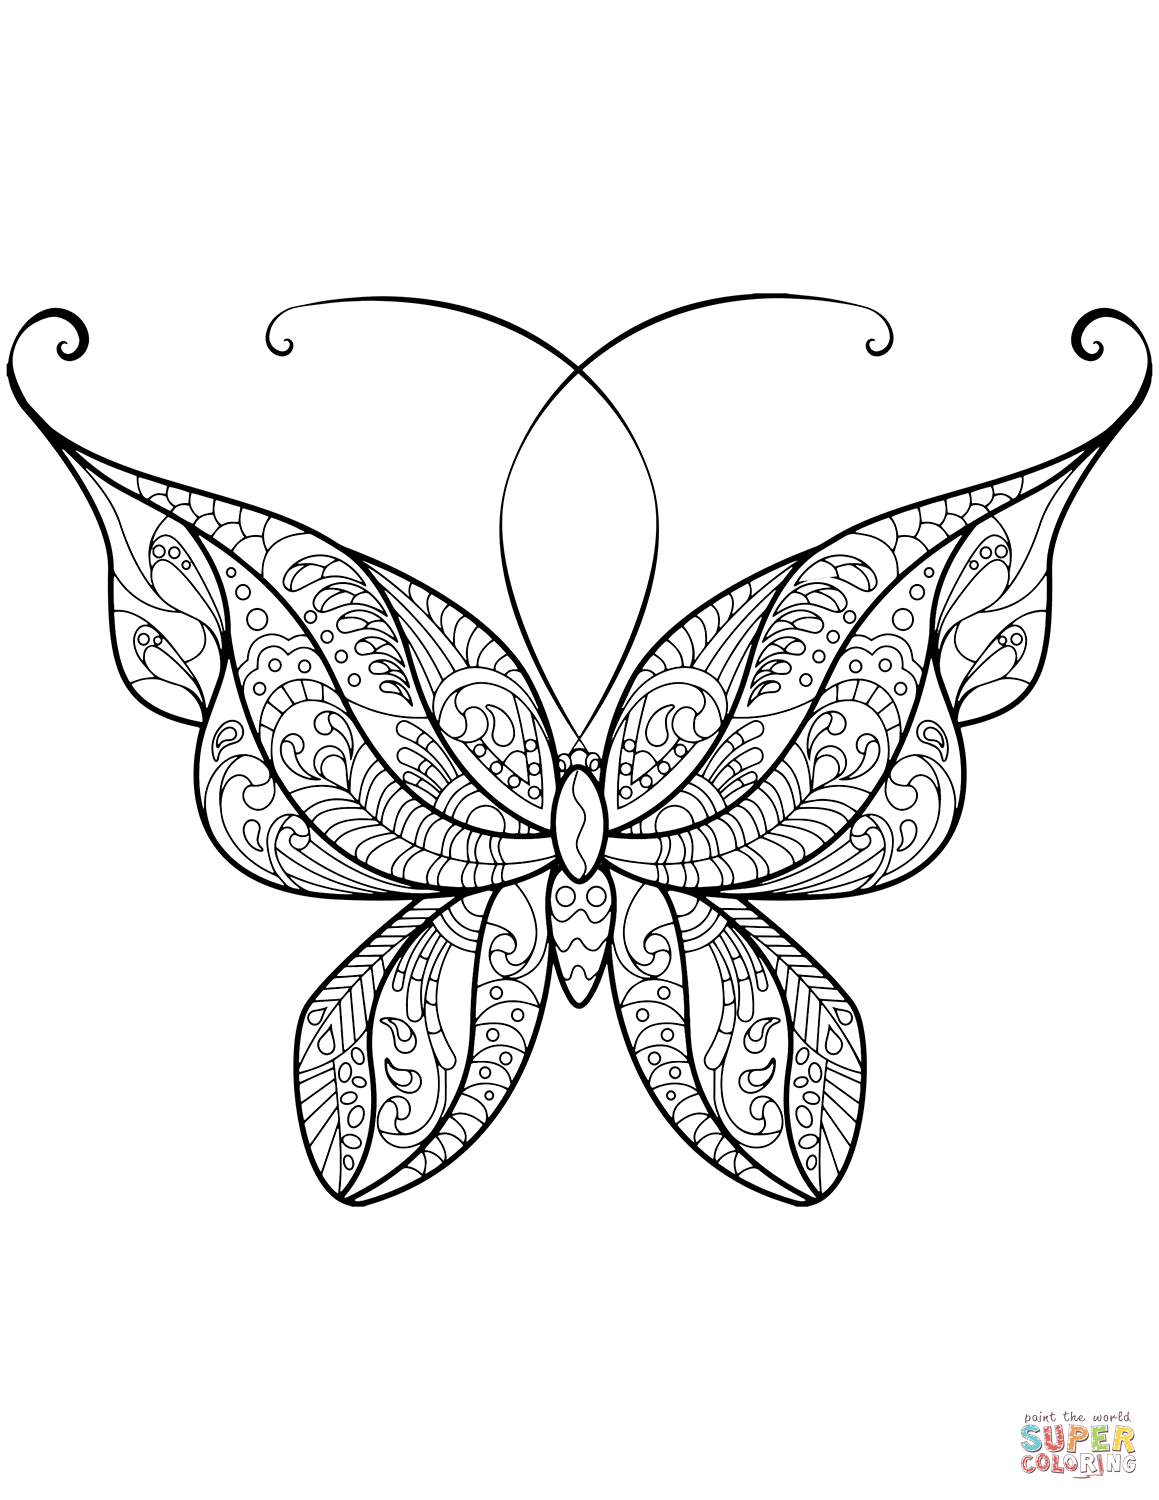 Butterfly Coloring Pages | Free Coloring Pages - Butterfly Free Printable Coloring Pages